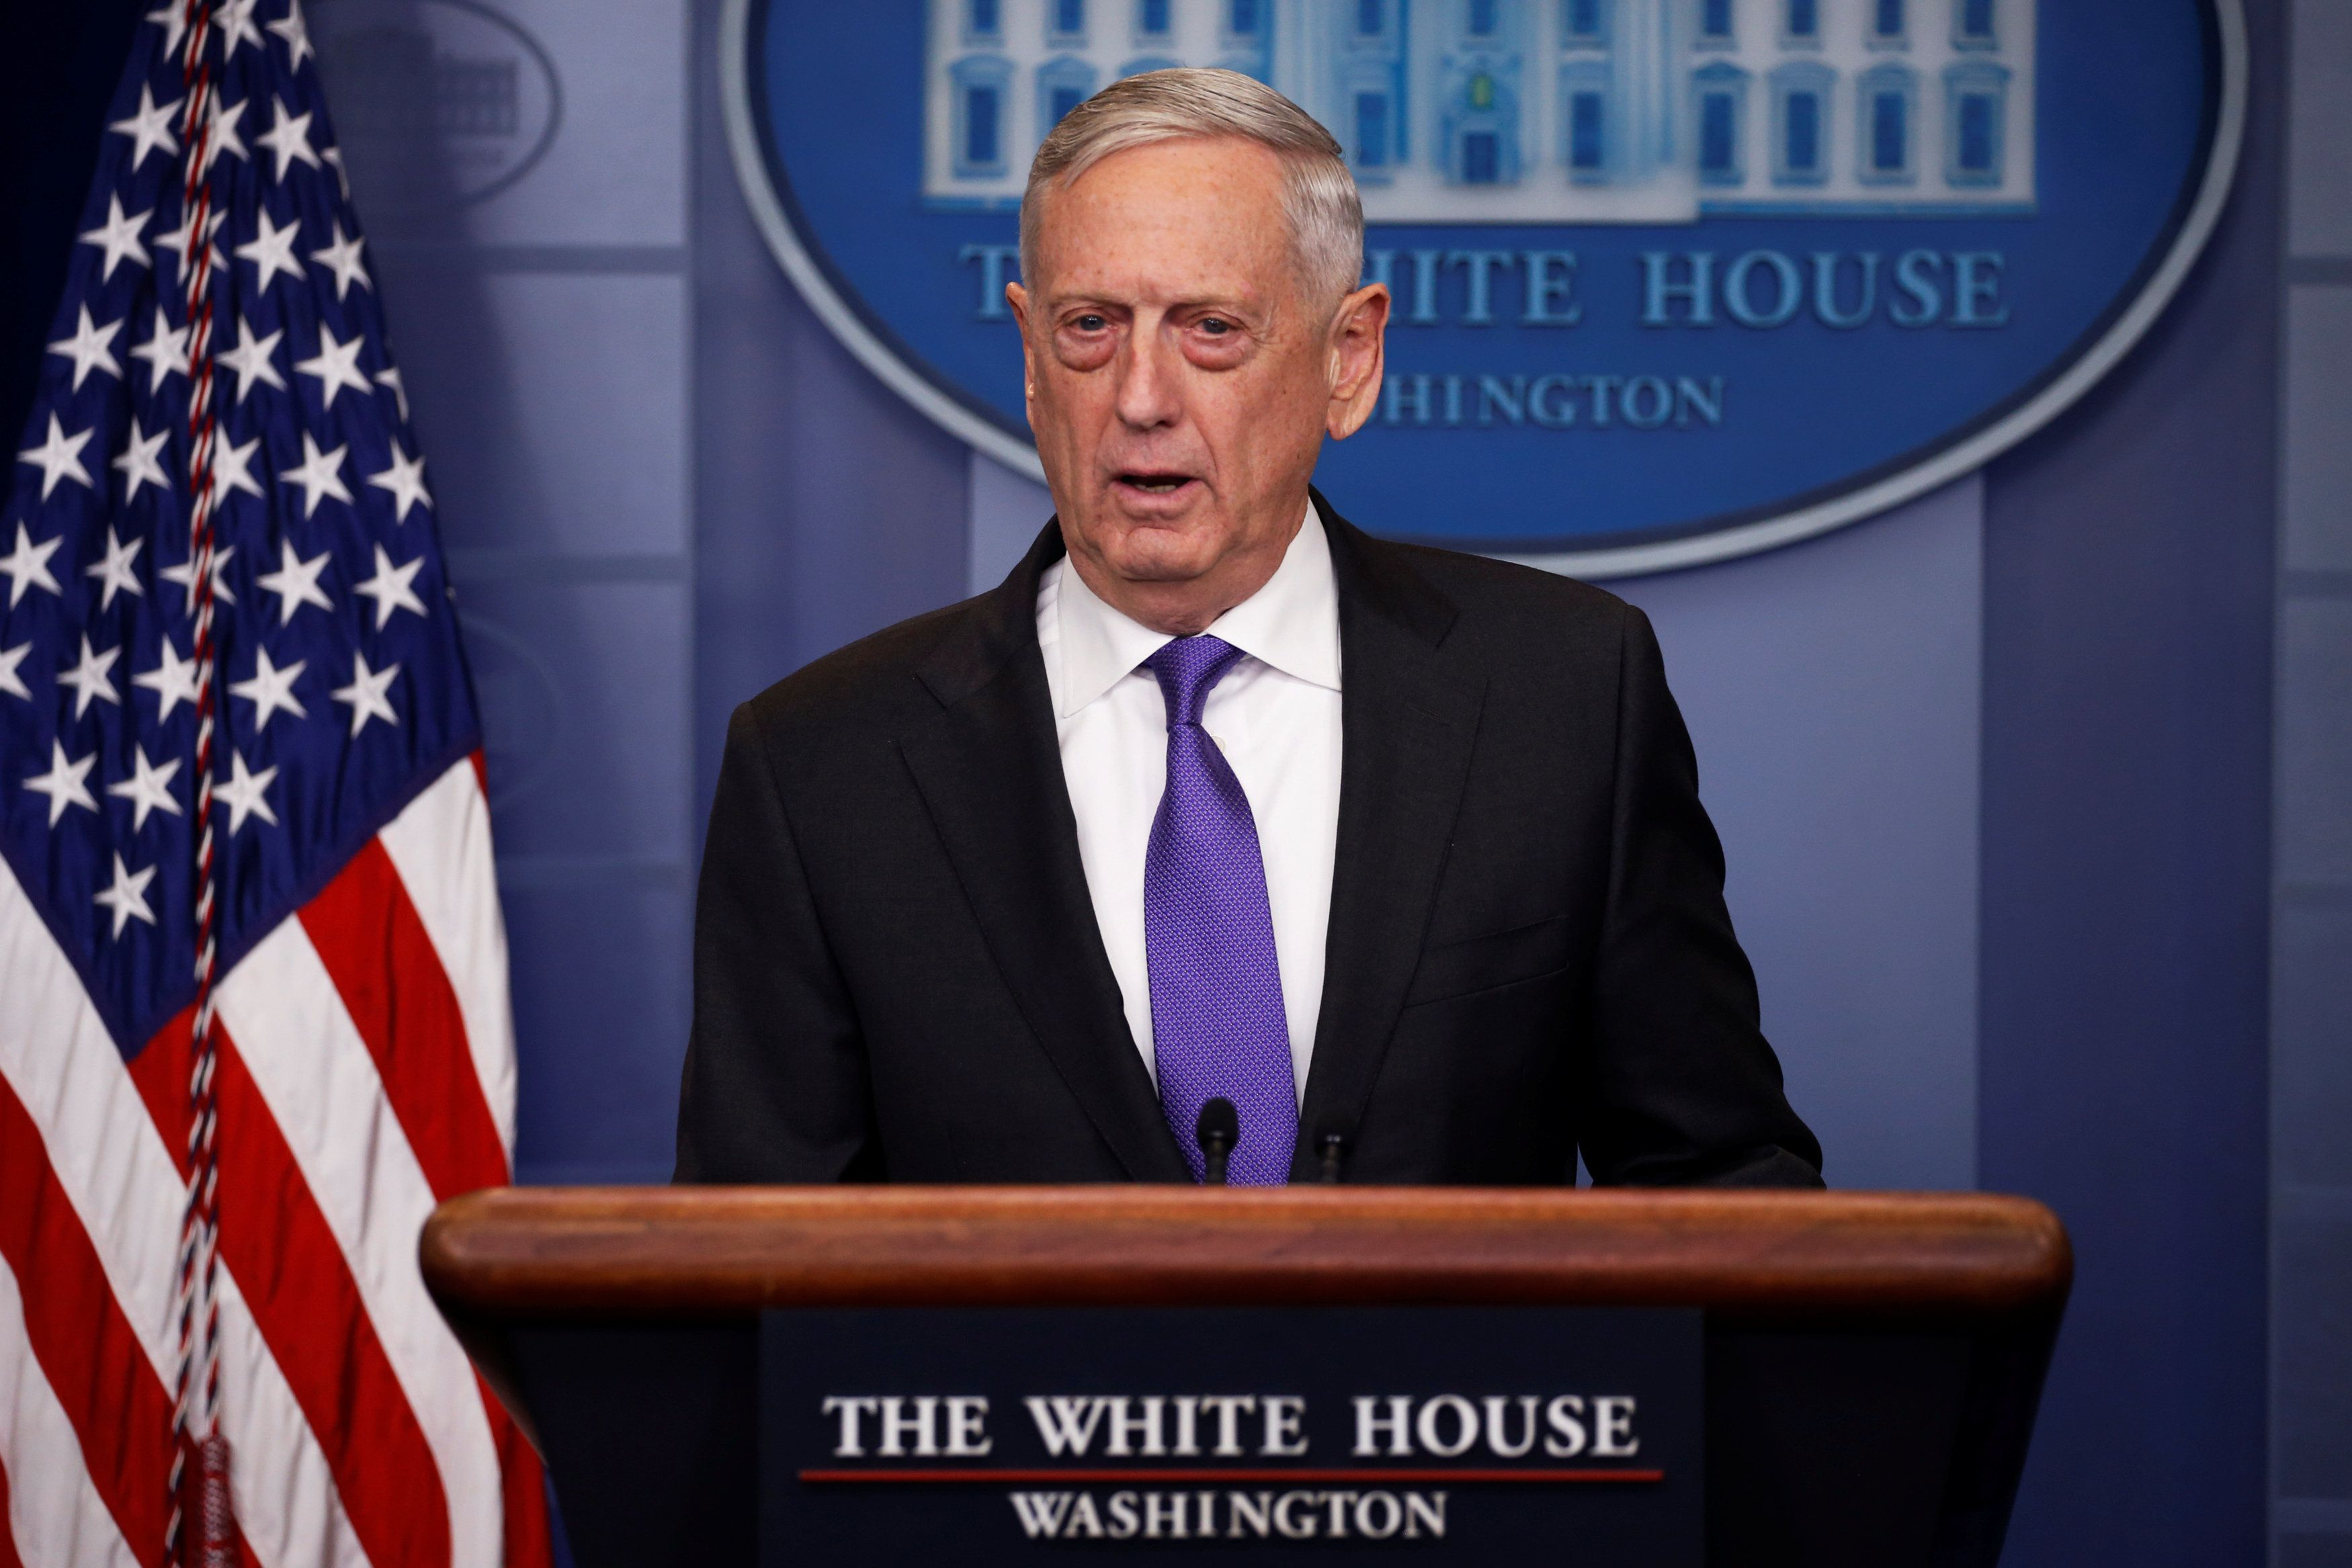 Mattis became the latest high-profile appointee to leave the Trump administration.